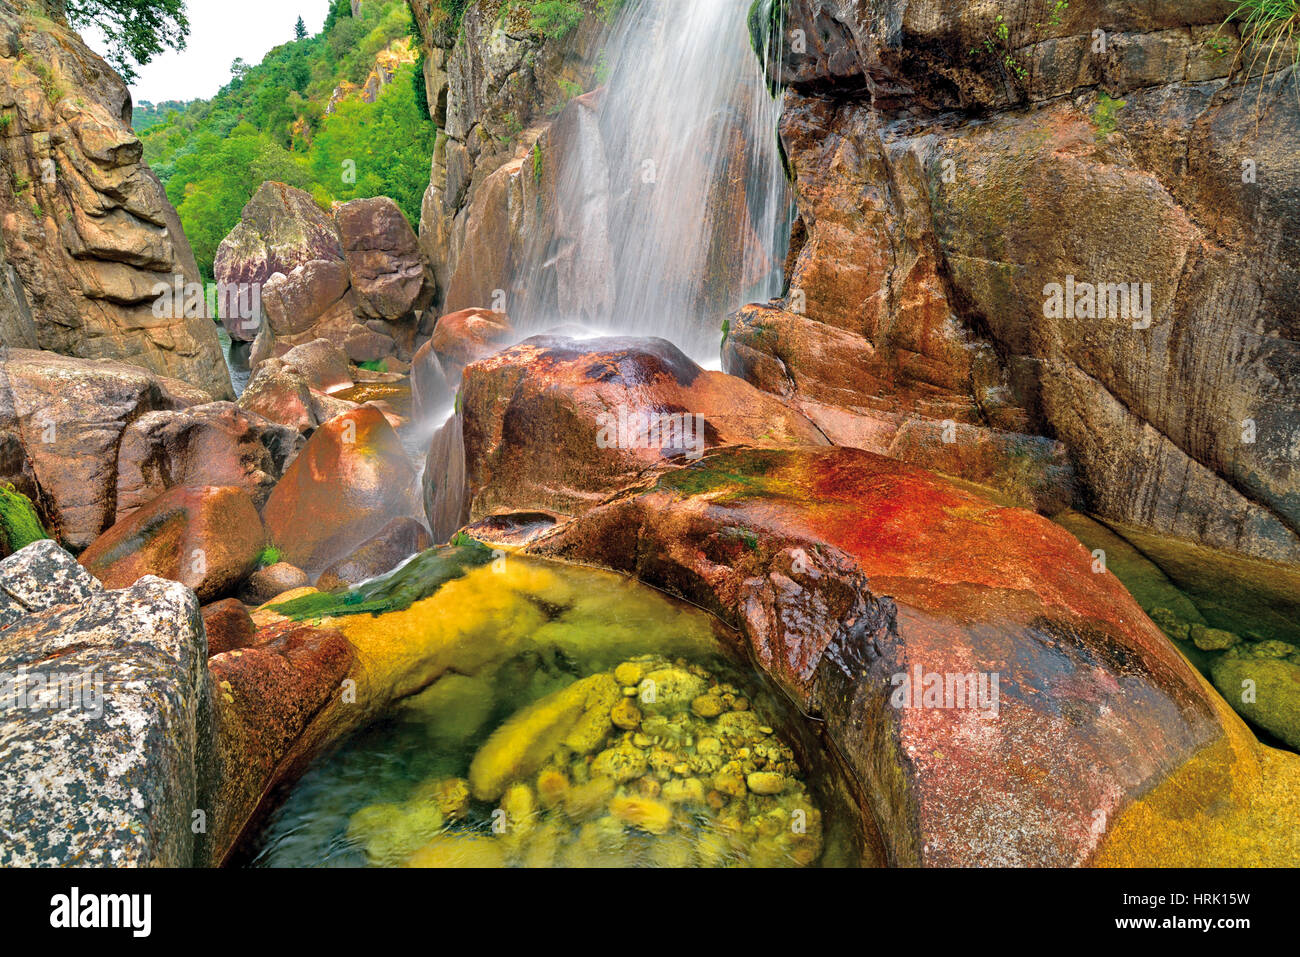 Wild ravine and waterfall with cristaline mountain water - Stock Image